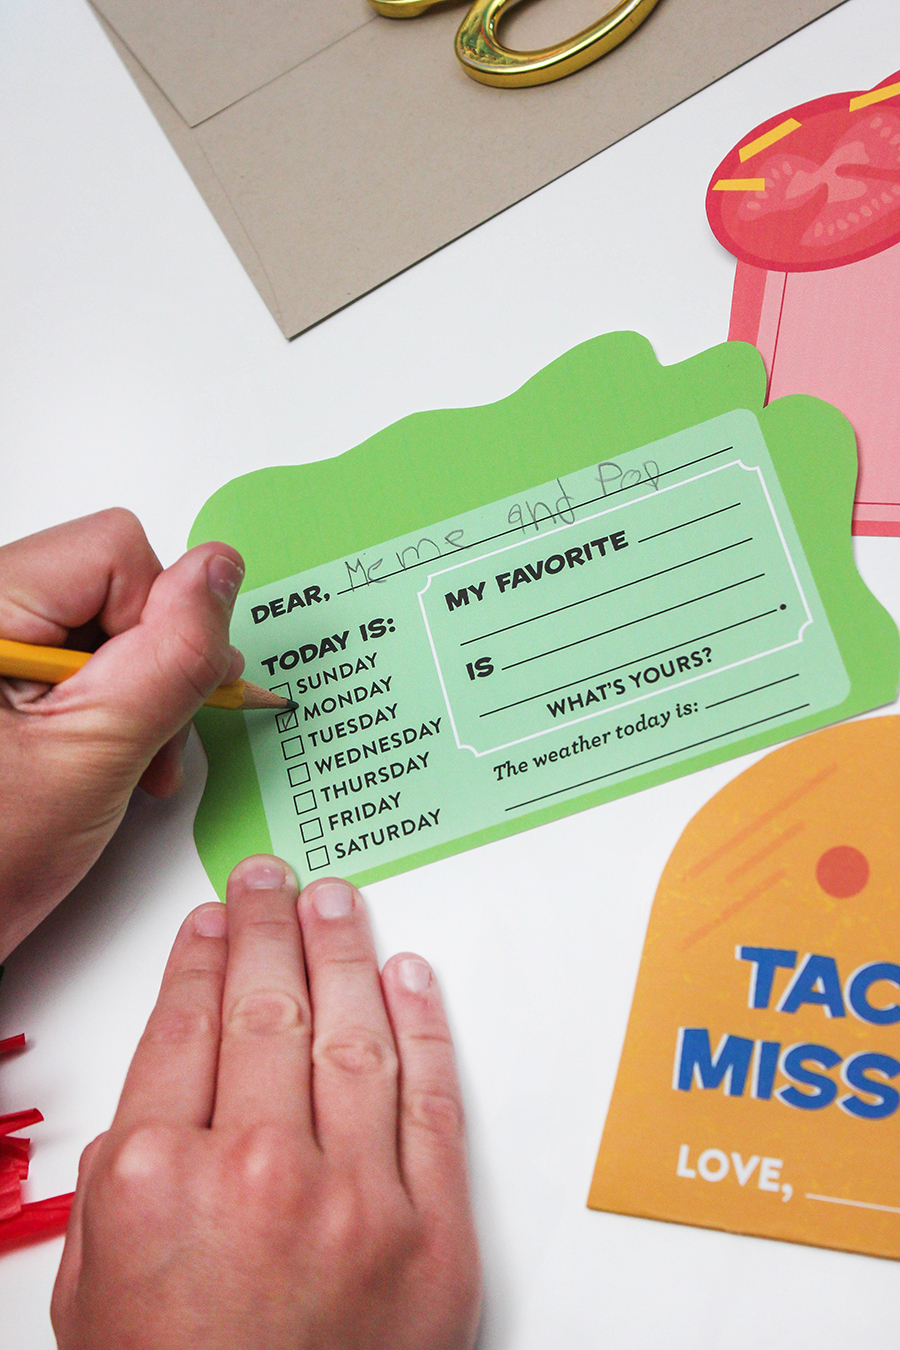 Taco Pen Pal Letter for Kids, taco, letter, taco letter, pen pal, taco 'bout missing you, pen pal template, free printable, Just Add Confetti, taco card, taco pen pal